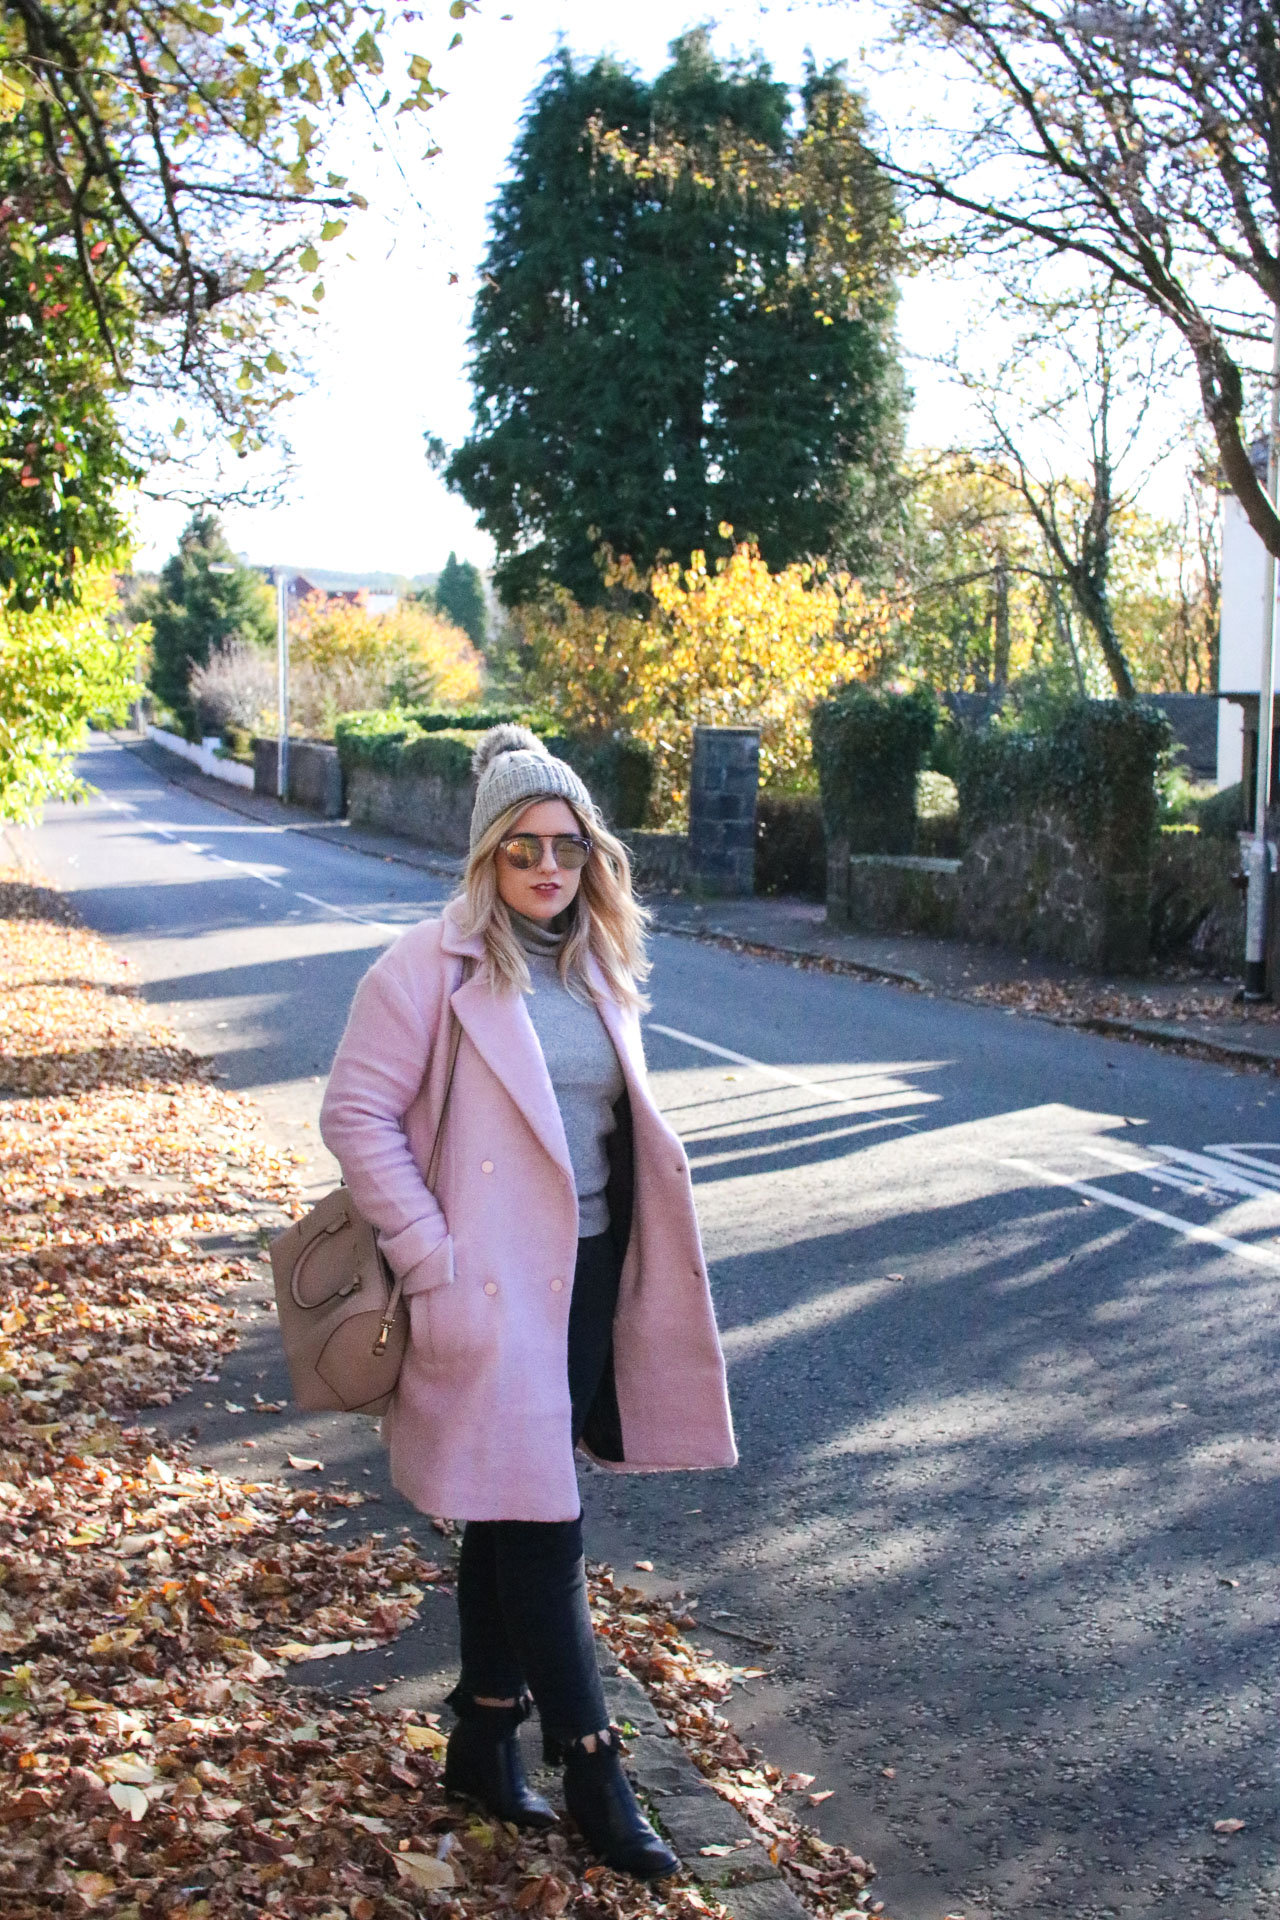 pink coat winter outfit autumn